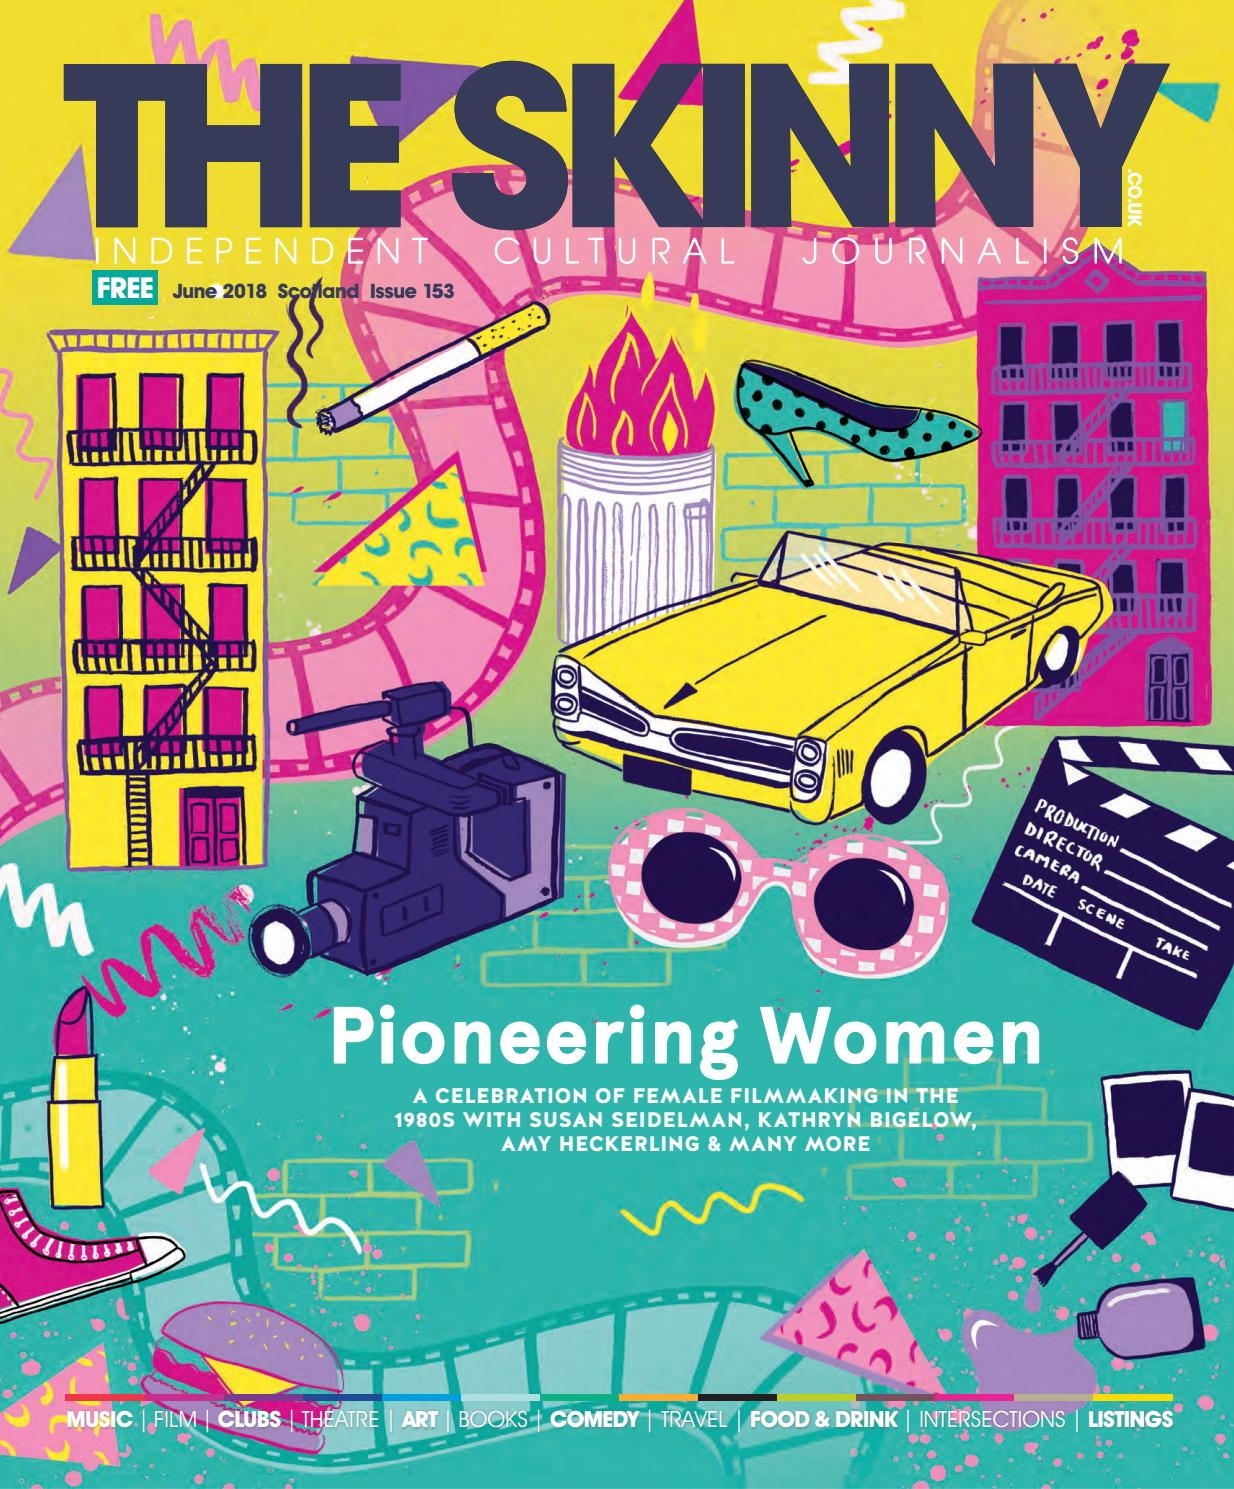 d7d7470a4f3 The Skinny June 2018 by The Skinny - issuu